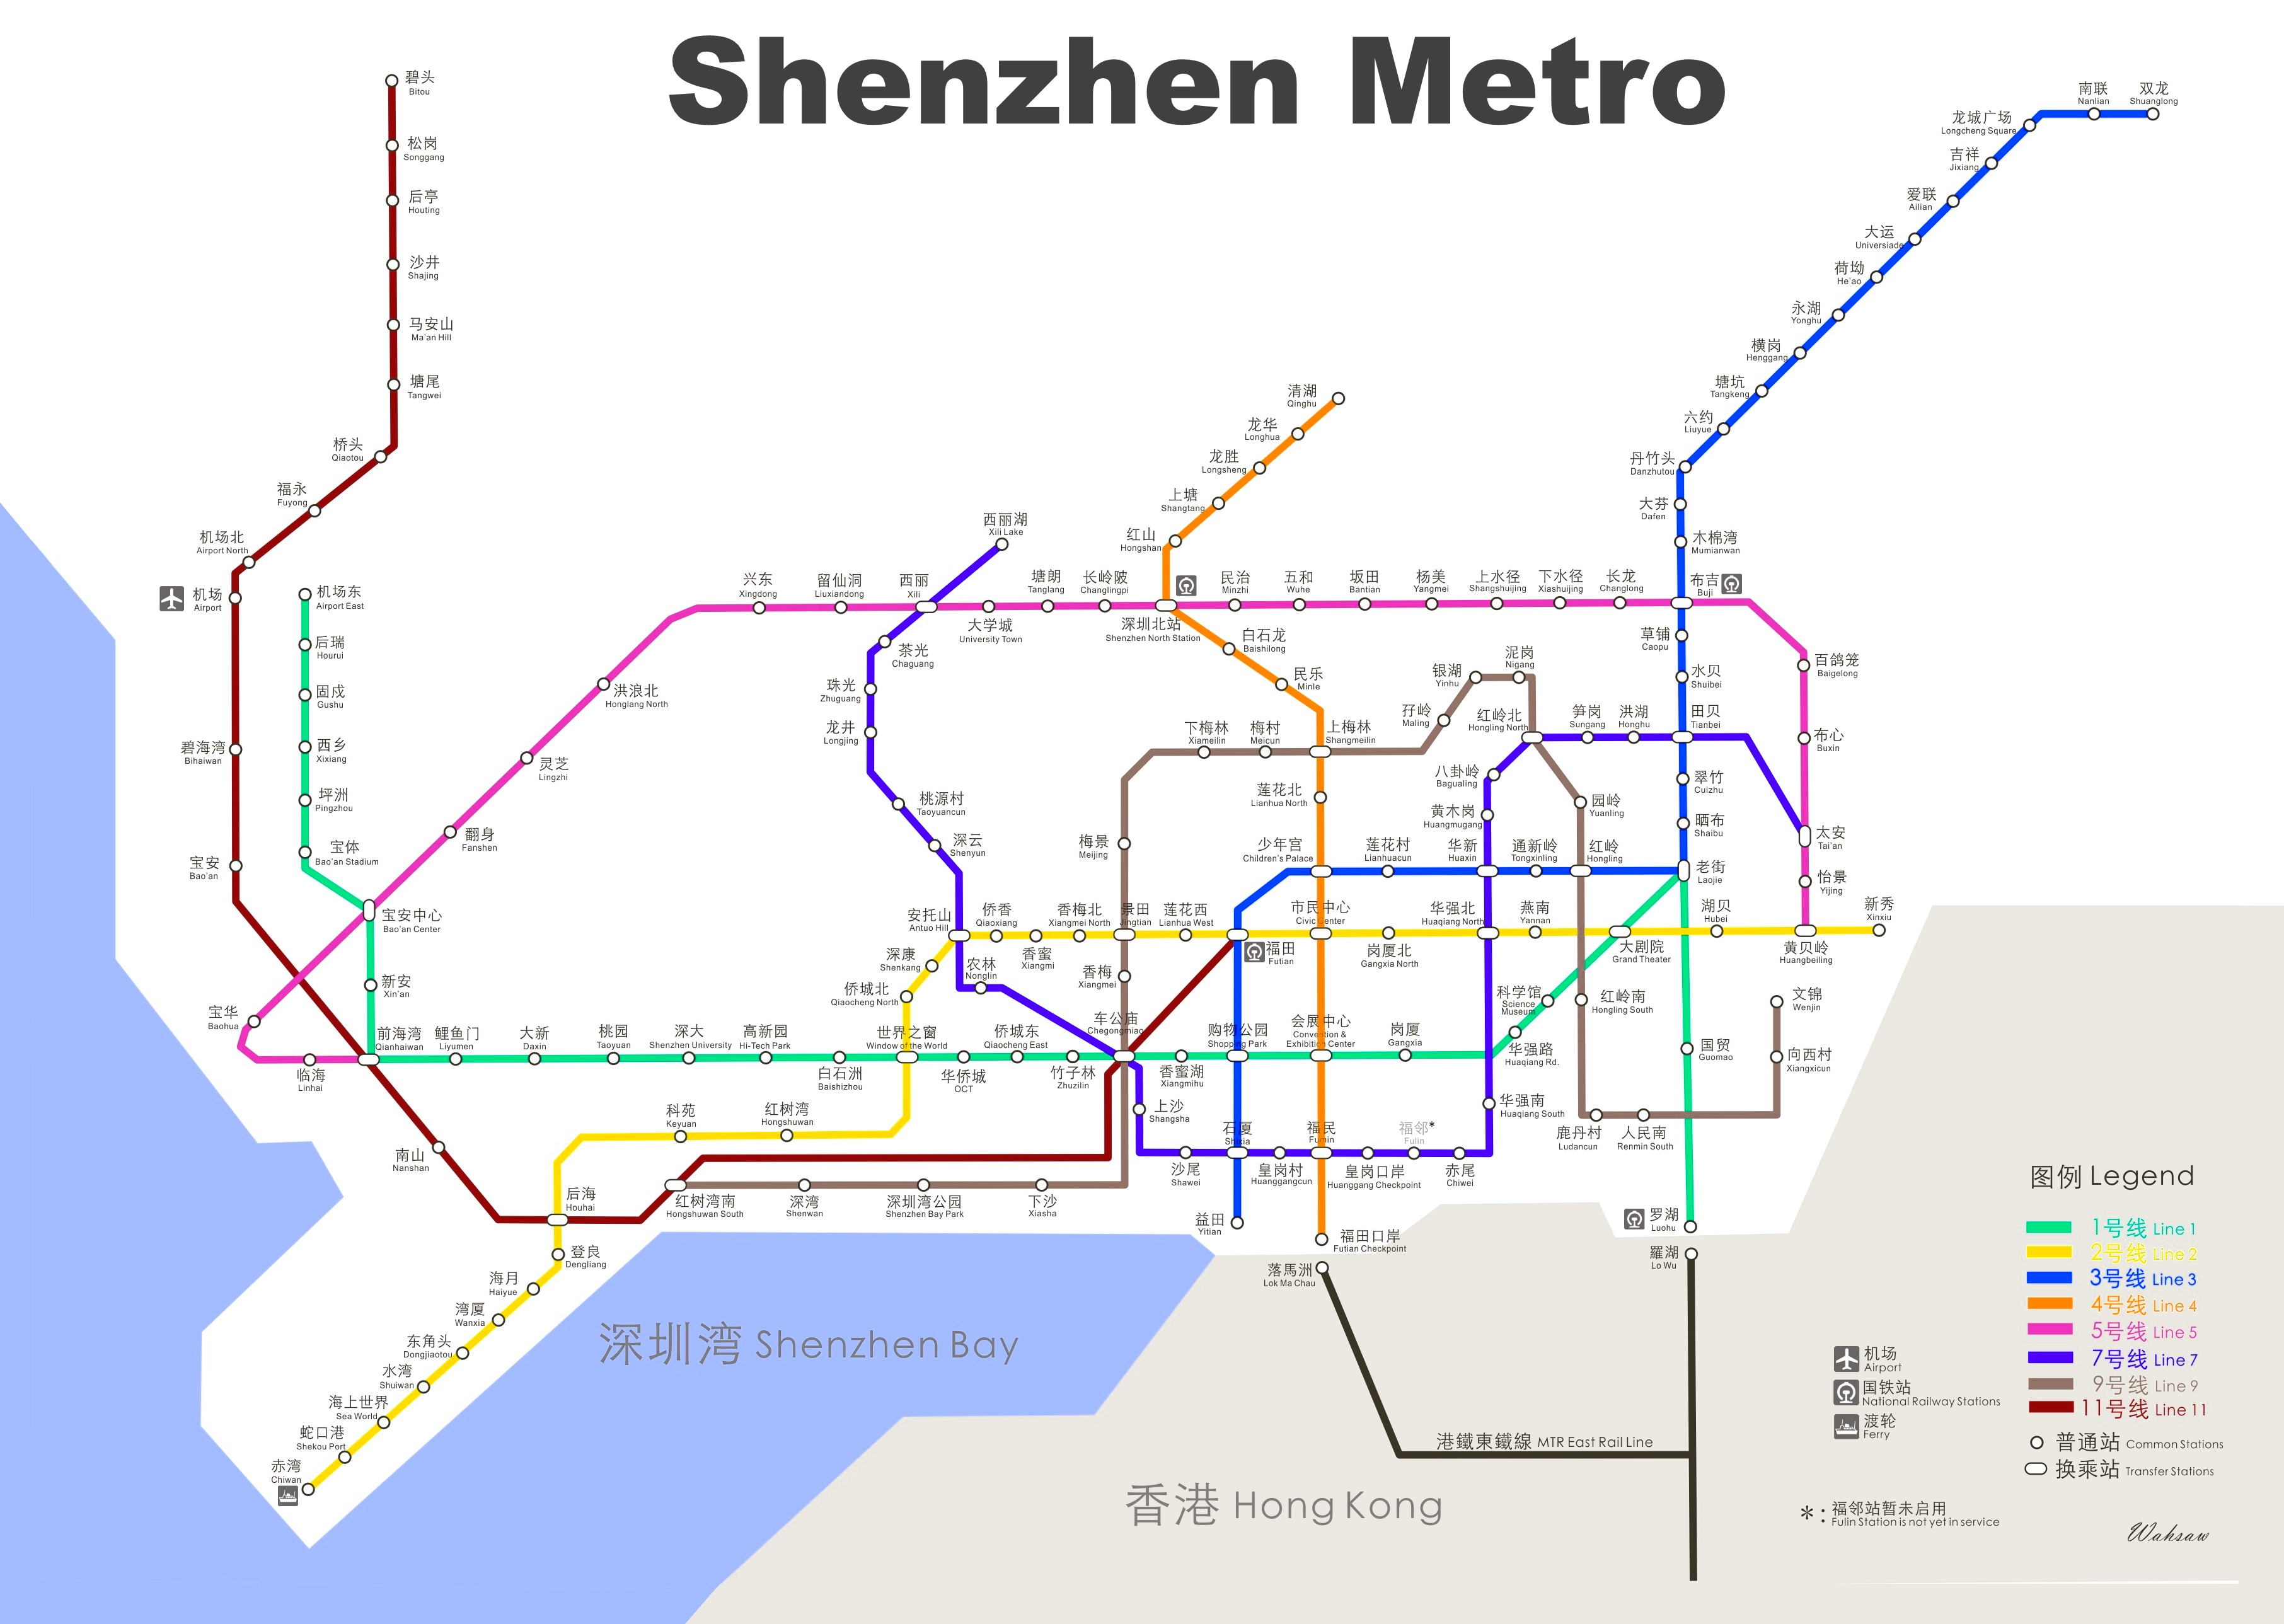 Shenzhen metro map on montreal metro, yantai metro map, tianjin metro, xiamen metro map, dalian metro map, kabul metro map, zibo metro map, chengdu metro, hefei metro map, city metro map, tokyo metro map, guilin metro map, nanjing metro, edmonton metro map, hangzhou metro, jakarta metro map, guangzhou metro, dhaka metro map, ningbo metro map, shenzhen bao'an international airport, island line, shenzhen railway station, moscow metro, chongqing metro, walt disney world monorail system map, shanghai metro, changsha metro map, bucharest metro, guangzhou metro map, hong kong metro map, dalian metro, shanghai metro map, brussels metro, santiago metro, beijing subway, nanchang metro map, wuhan metro, shantou metro map, window of the world,